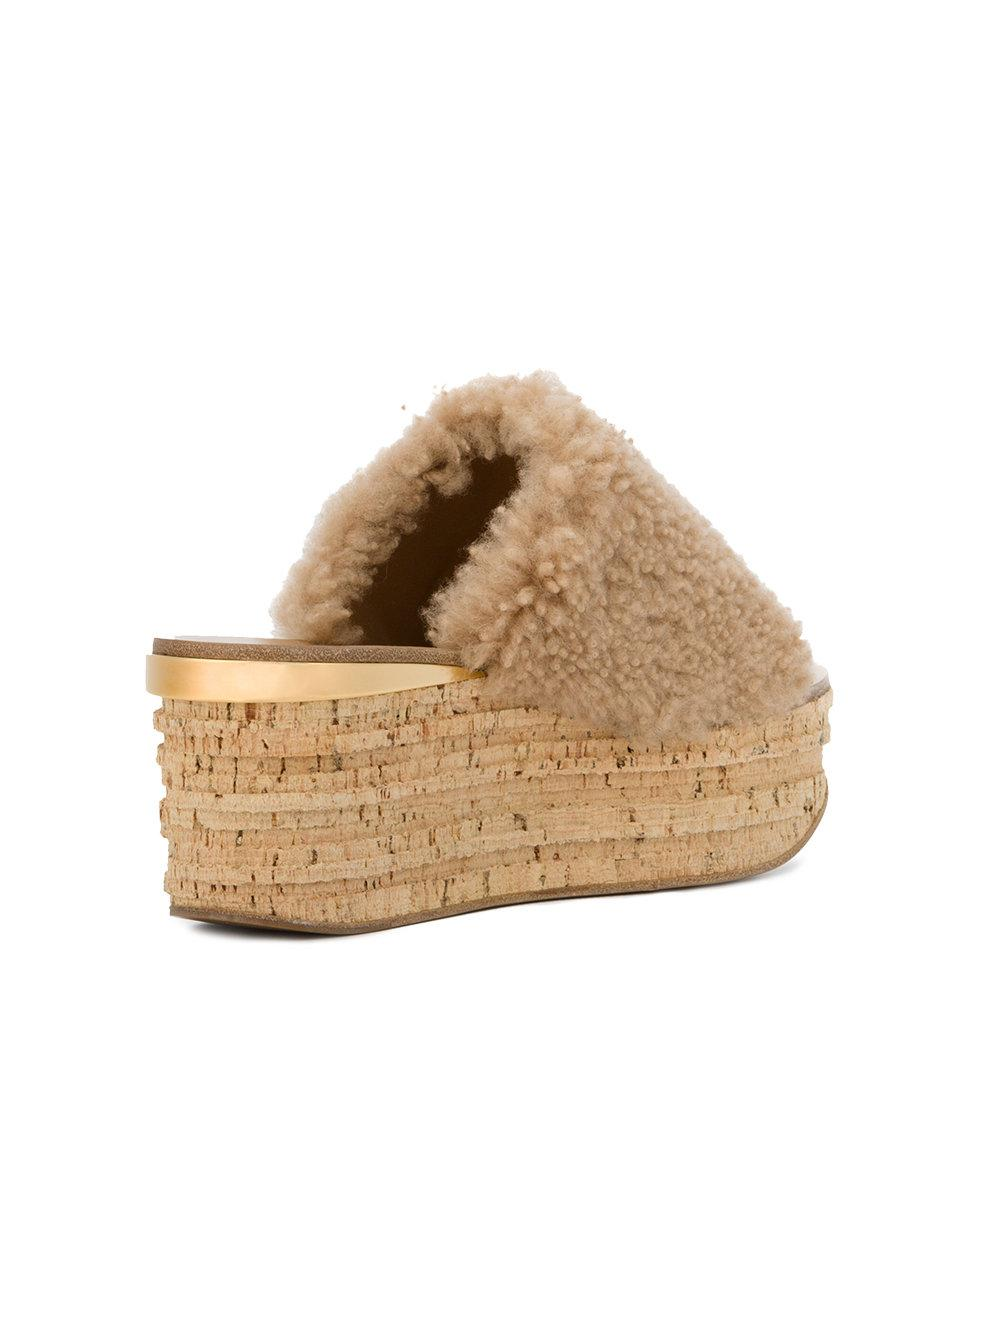 Nude Camille 75 Shearling flatform slides - Nude & Neutrals Chlo Buy Cheap Popular Sale Recommend 100% Authentic Cheap Online 1TC0pjx